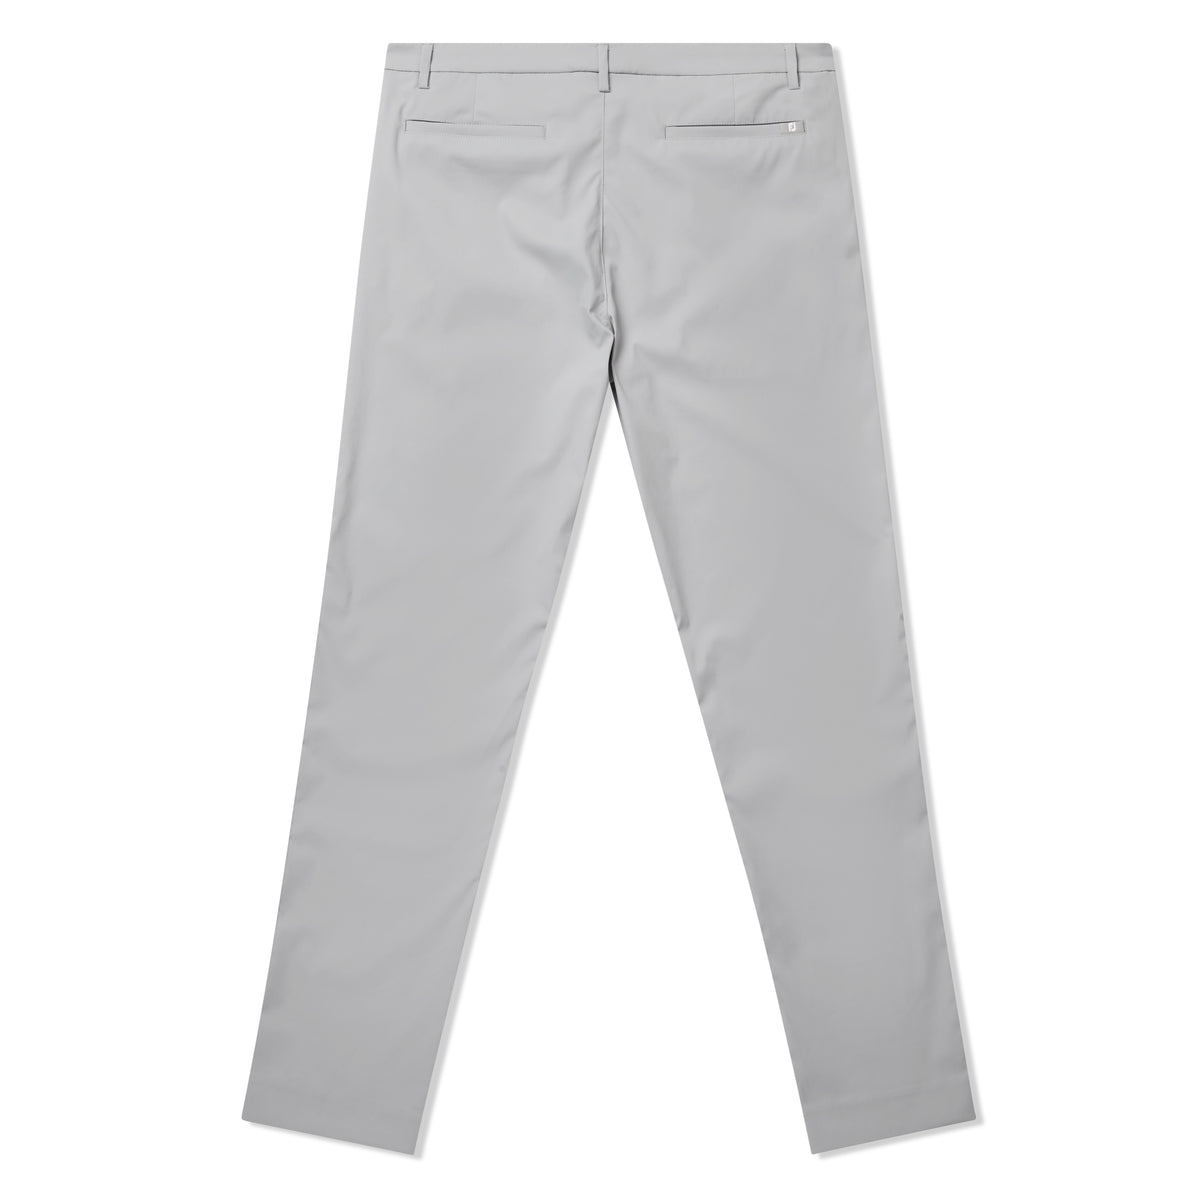 Buxur FJ Lite Tapered Fit Trouser